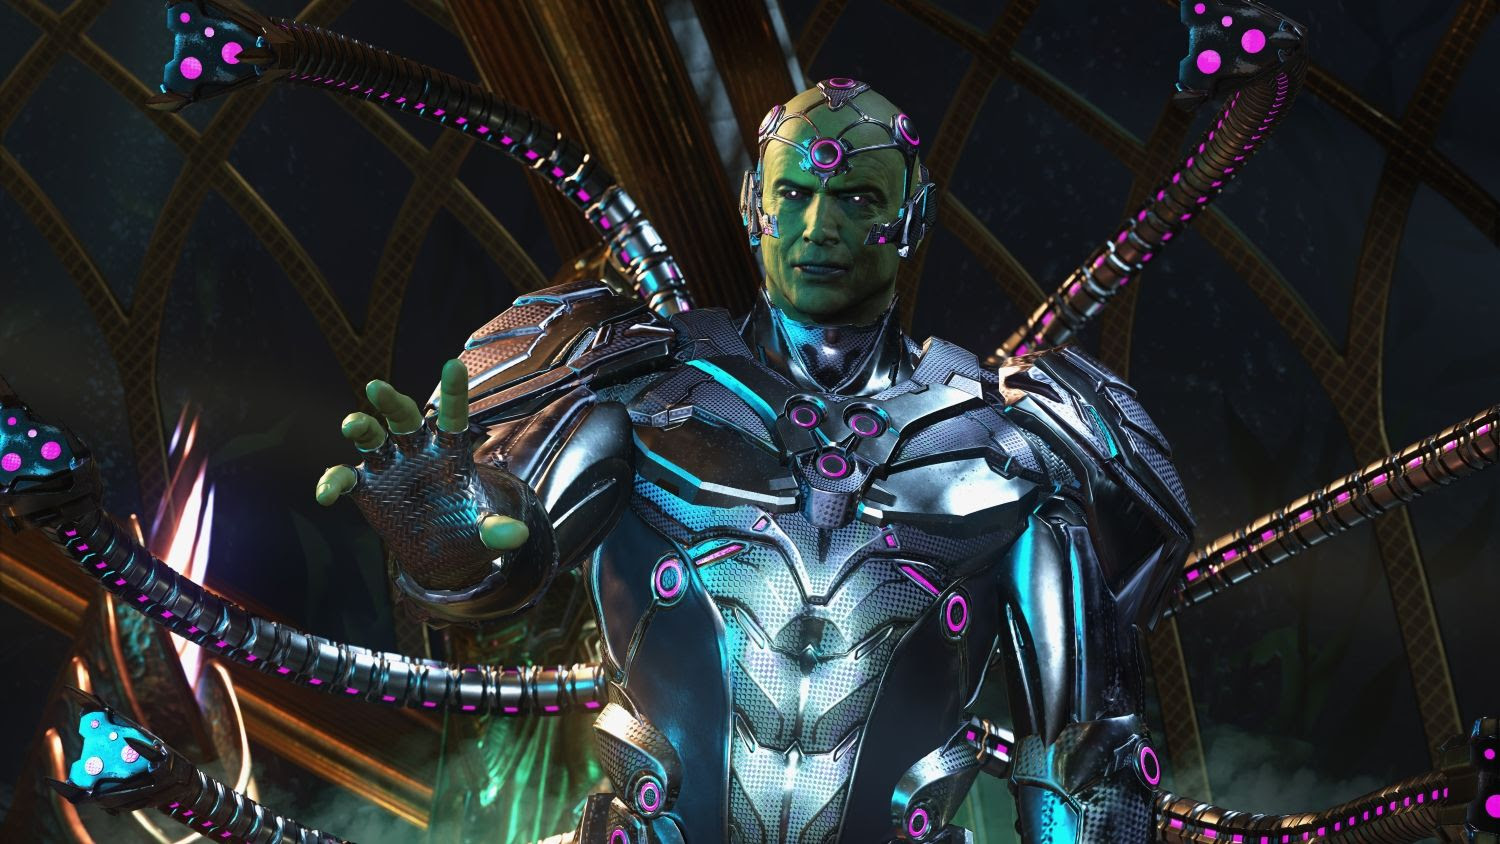 Take down Brainiac in Injustice 2 tomorrow screenshot